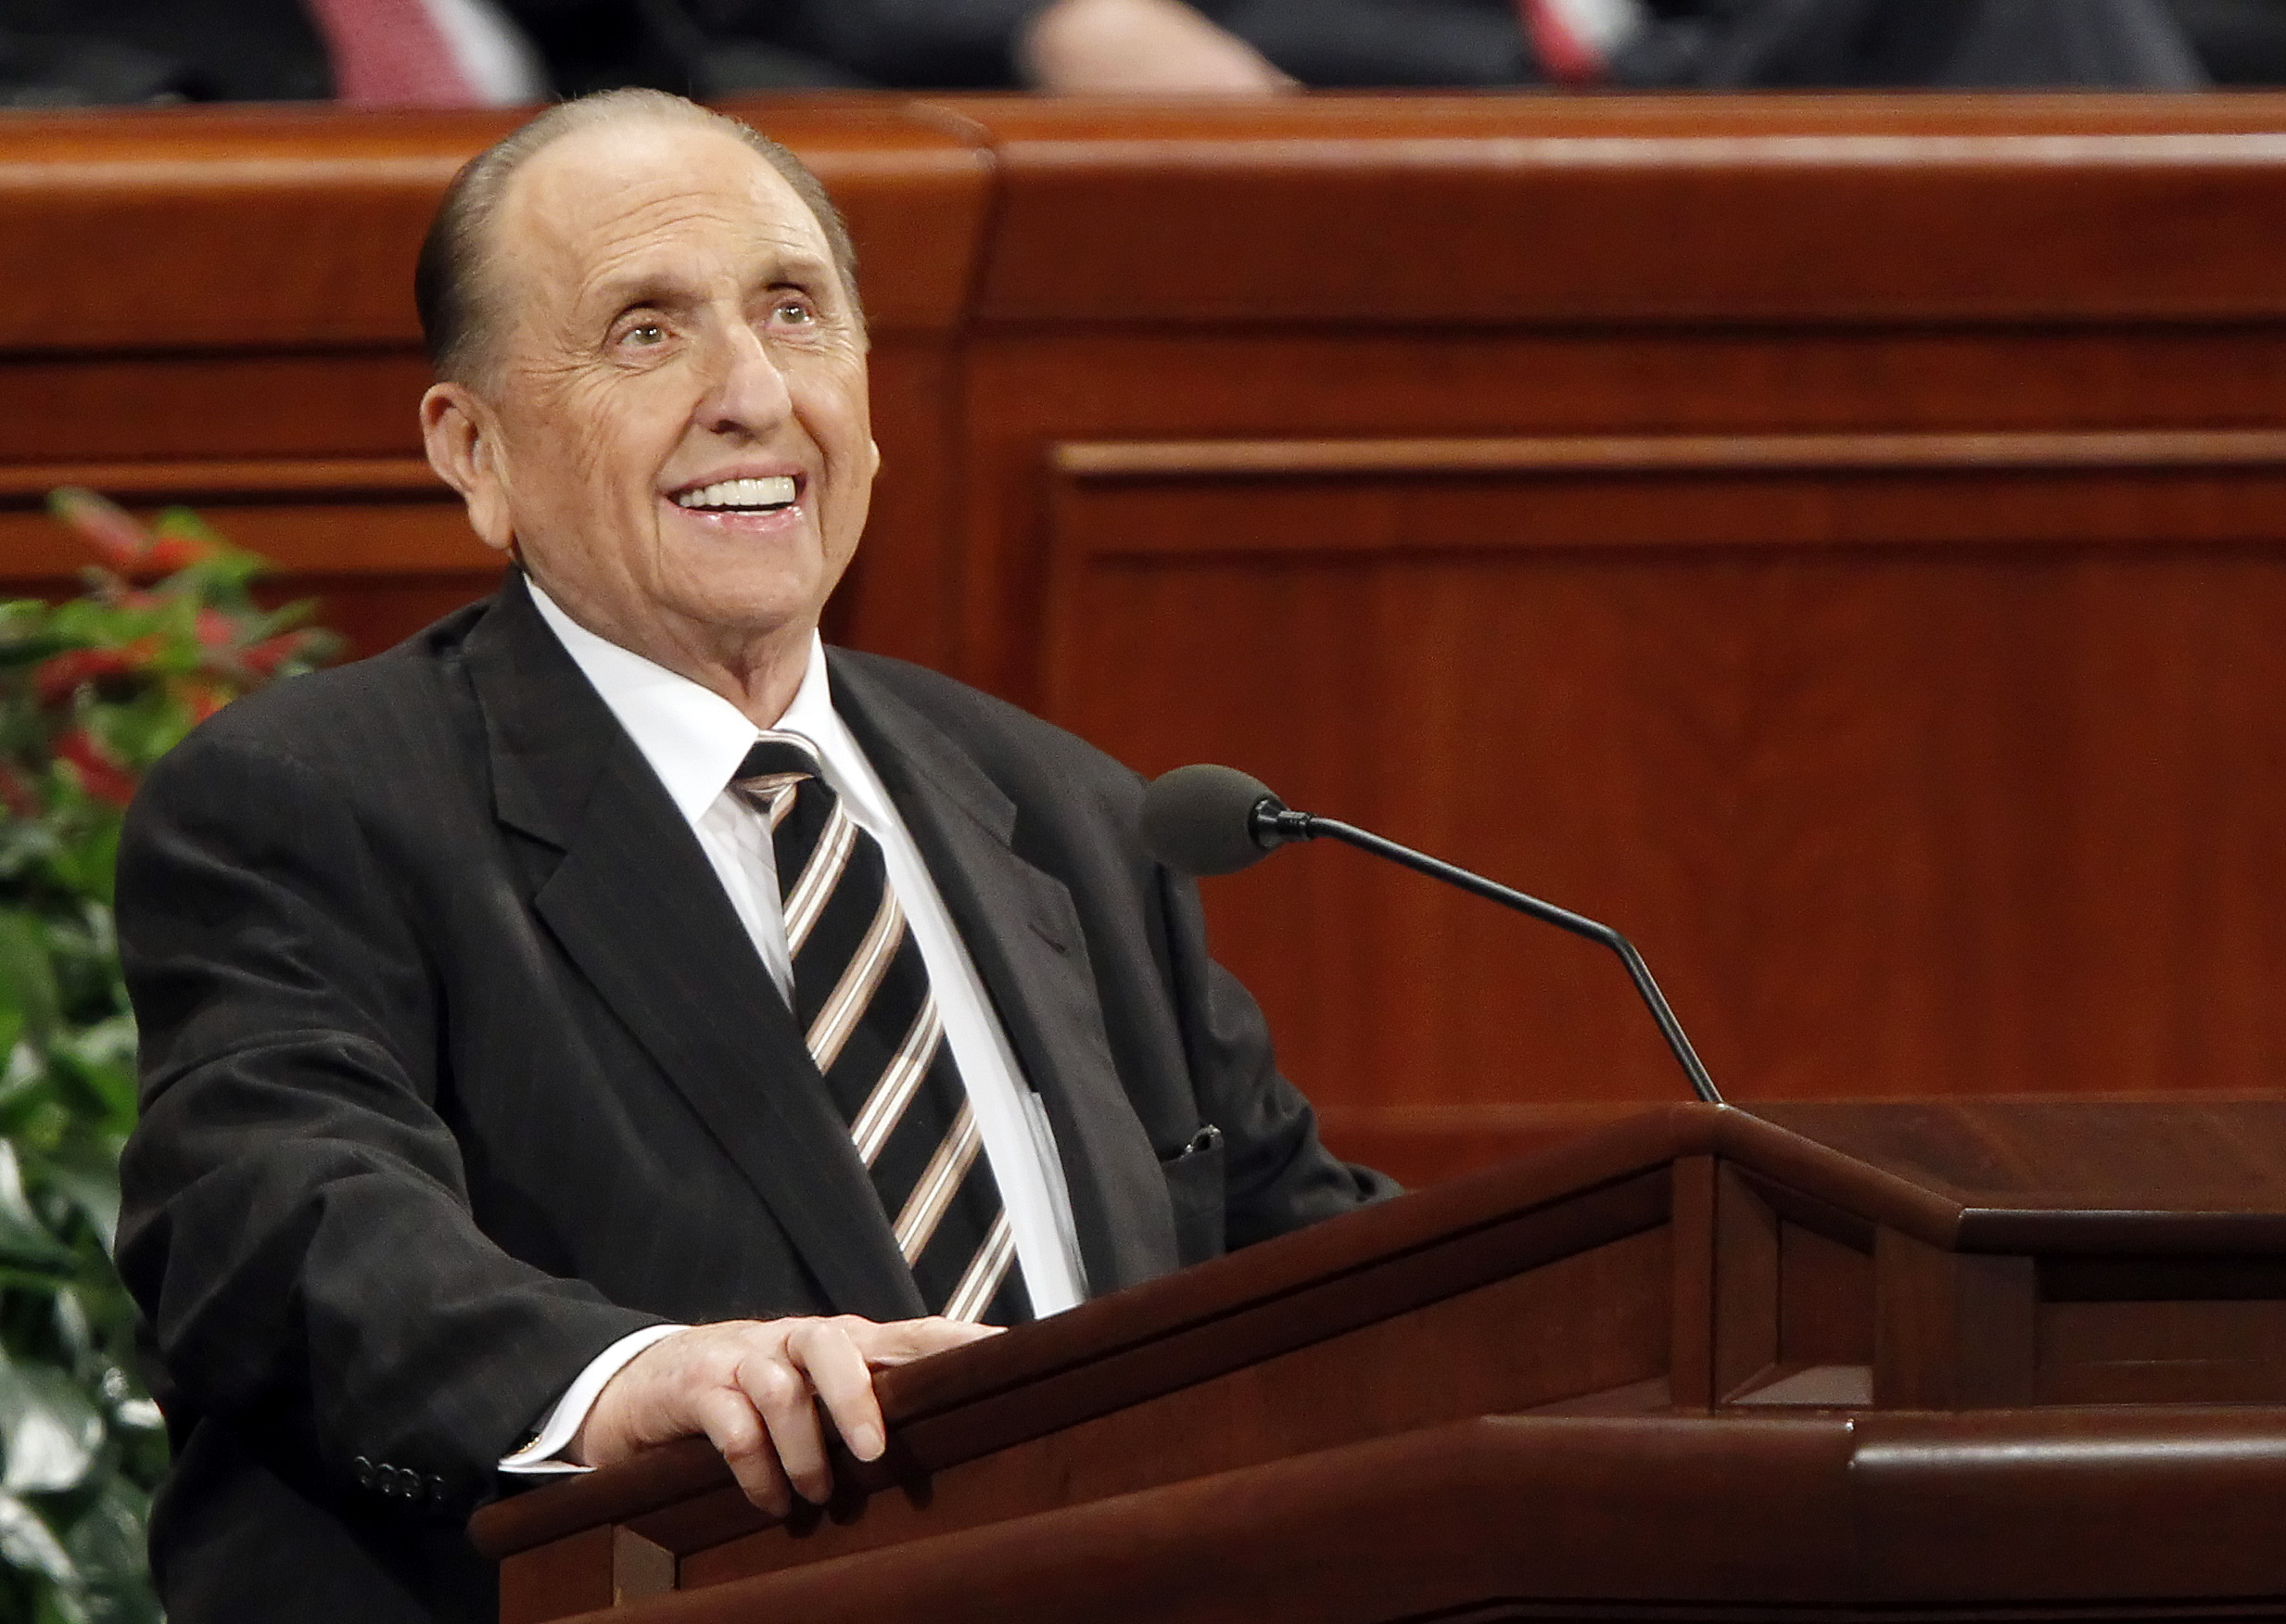 Thomas Monson, president of the Church of Jesus Christ of Latter-day Saints, speaks at the Church's 181st Semiannual General Conference in Salt Lake City, Utah on Oct. 1, 2011.